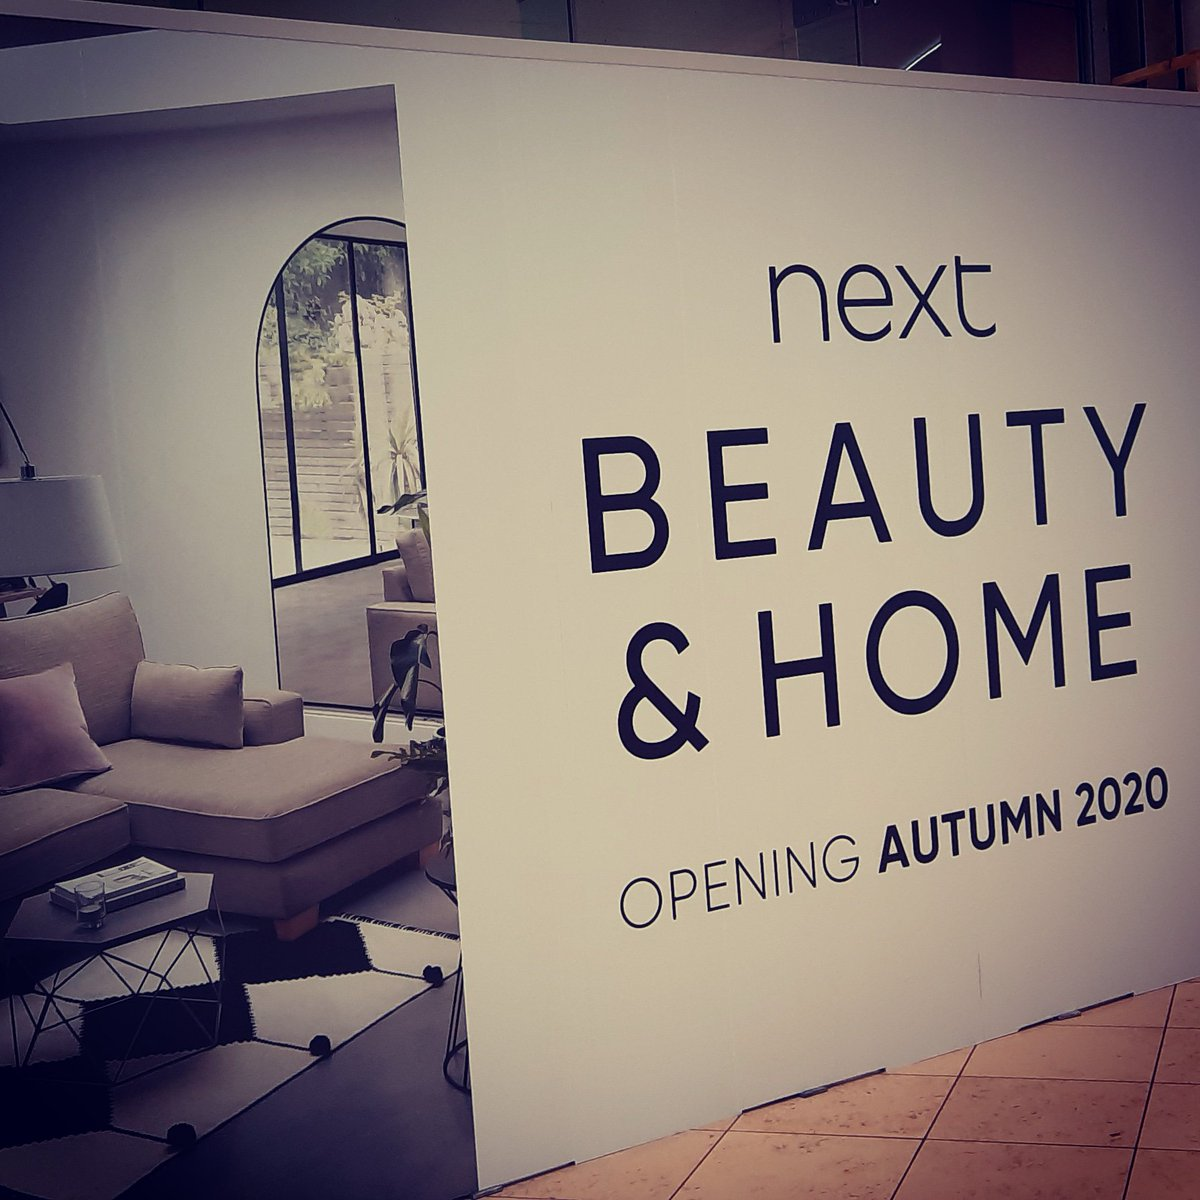 It's coming... @nextofficial #Beauty & #Home @intuMK 💄🏠😃 https://t.co/azLoqxC4Qs